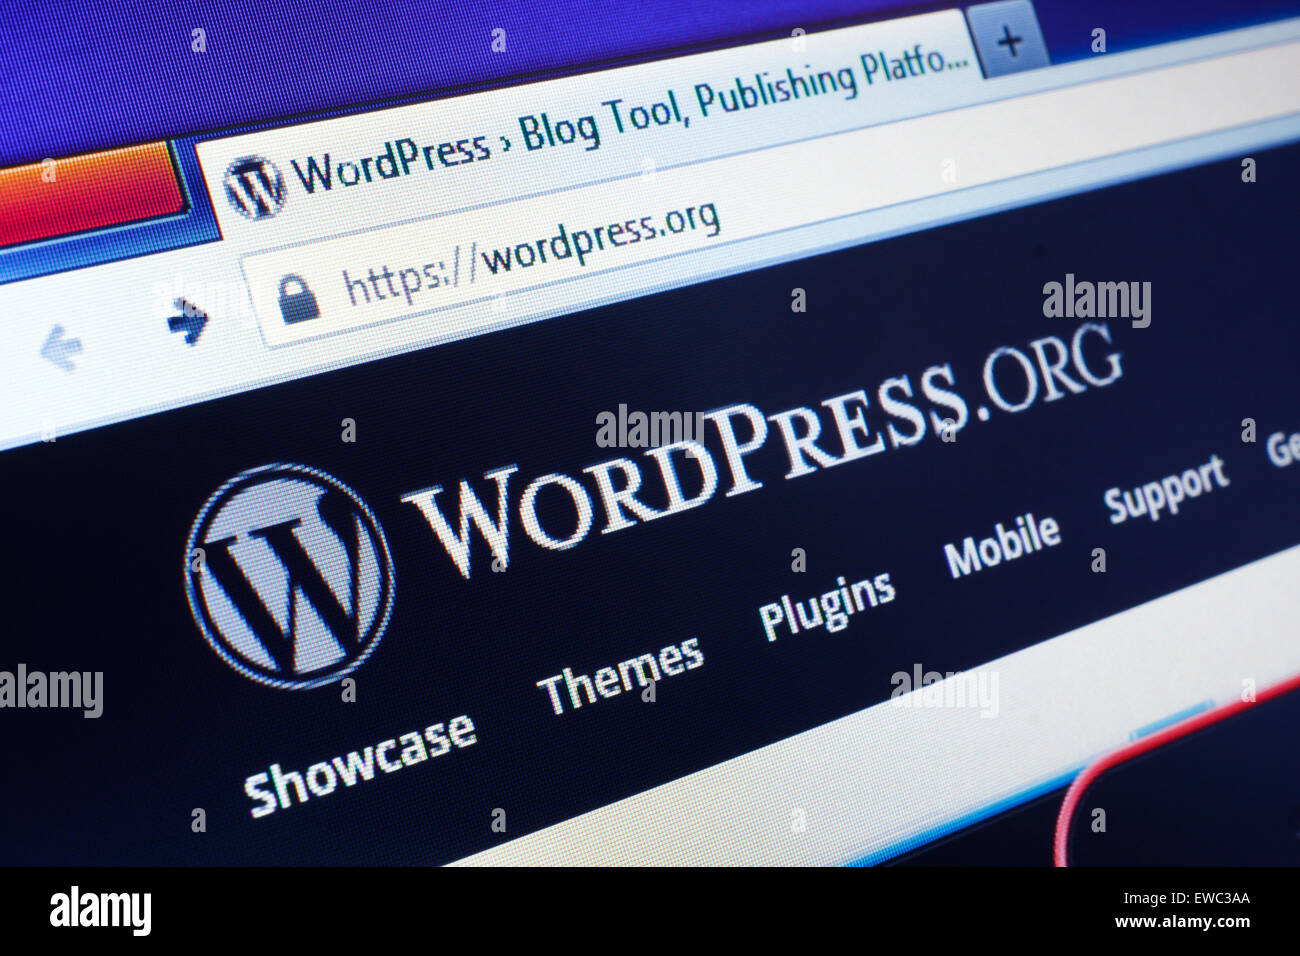 GDANSK, POLAND - APRIL 25, 2015. Wordpress homepage on the computer screen. WordPress is a free and open-source - Stock Image